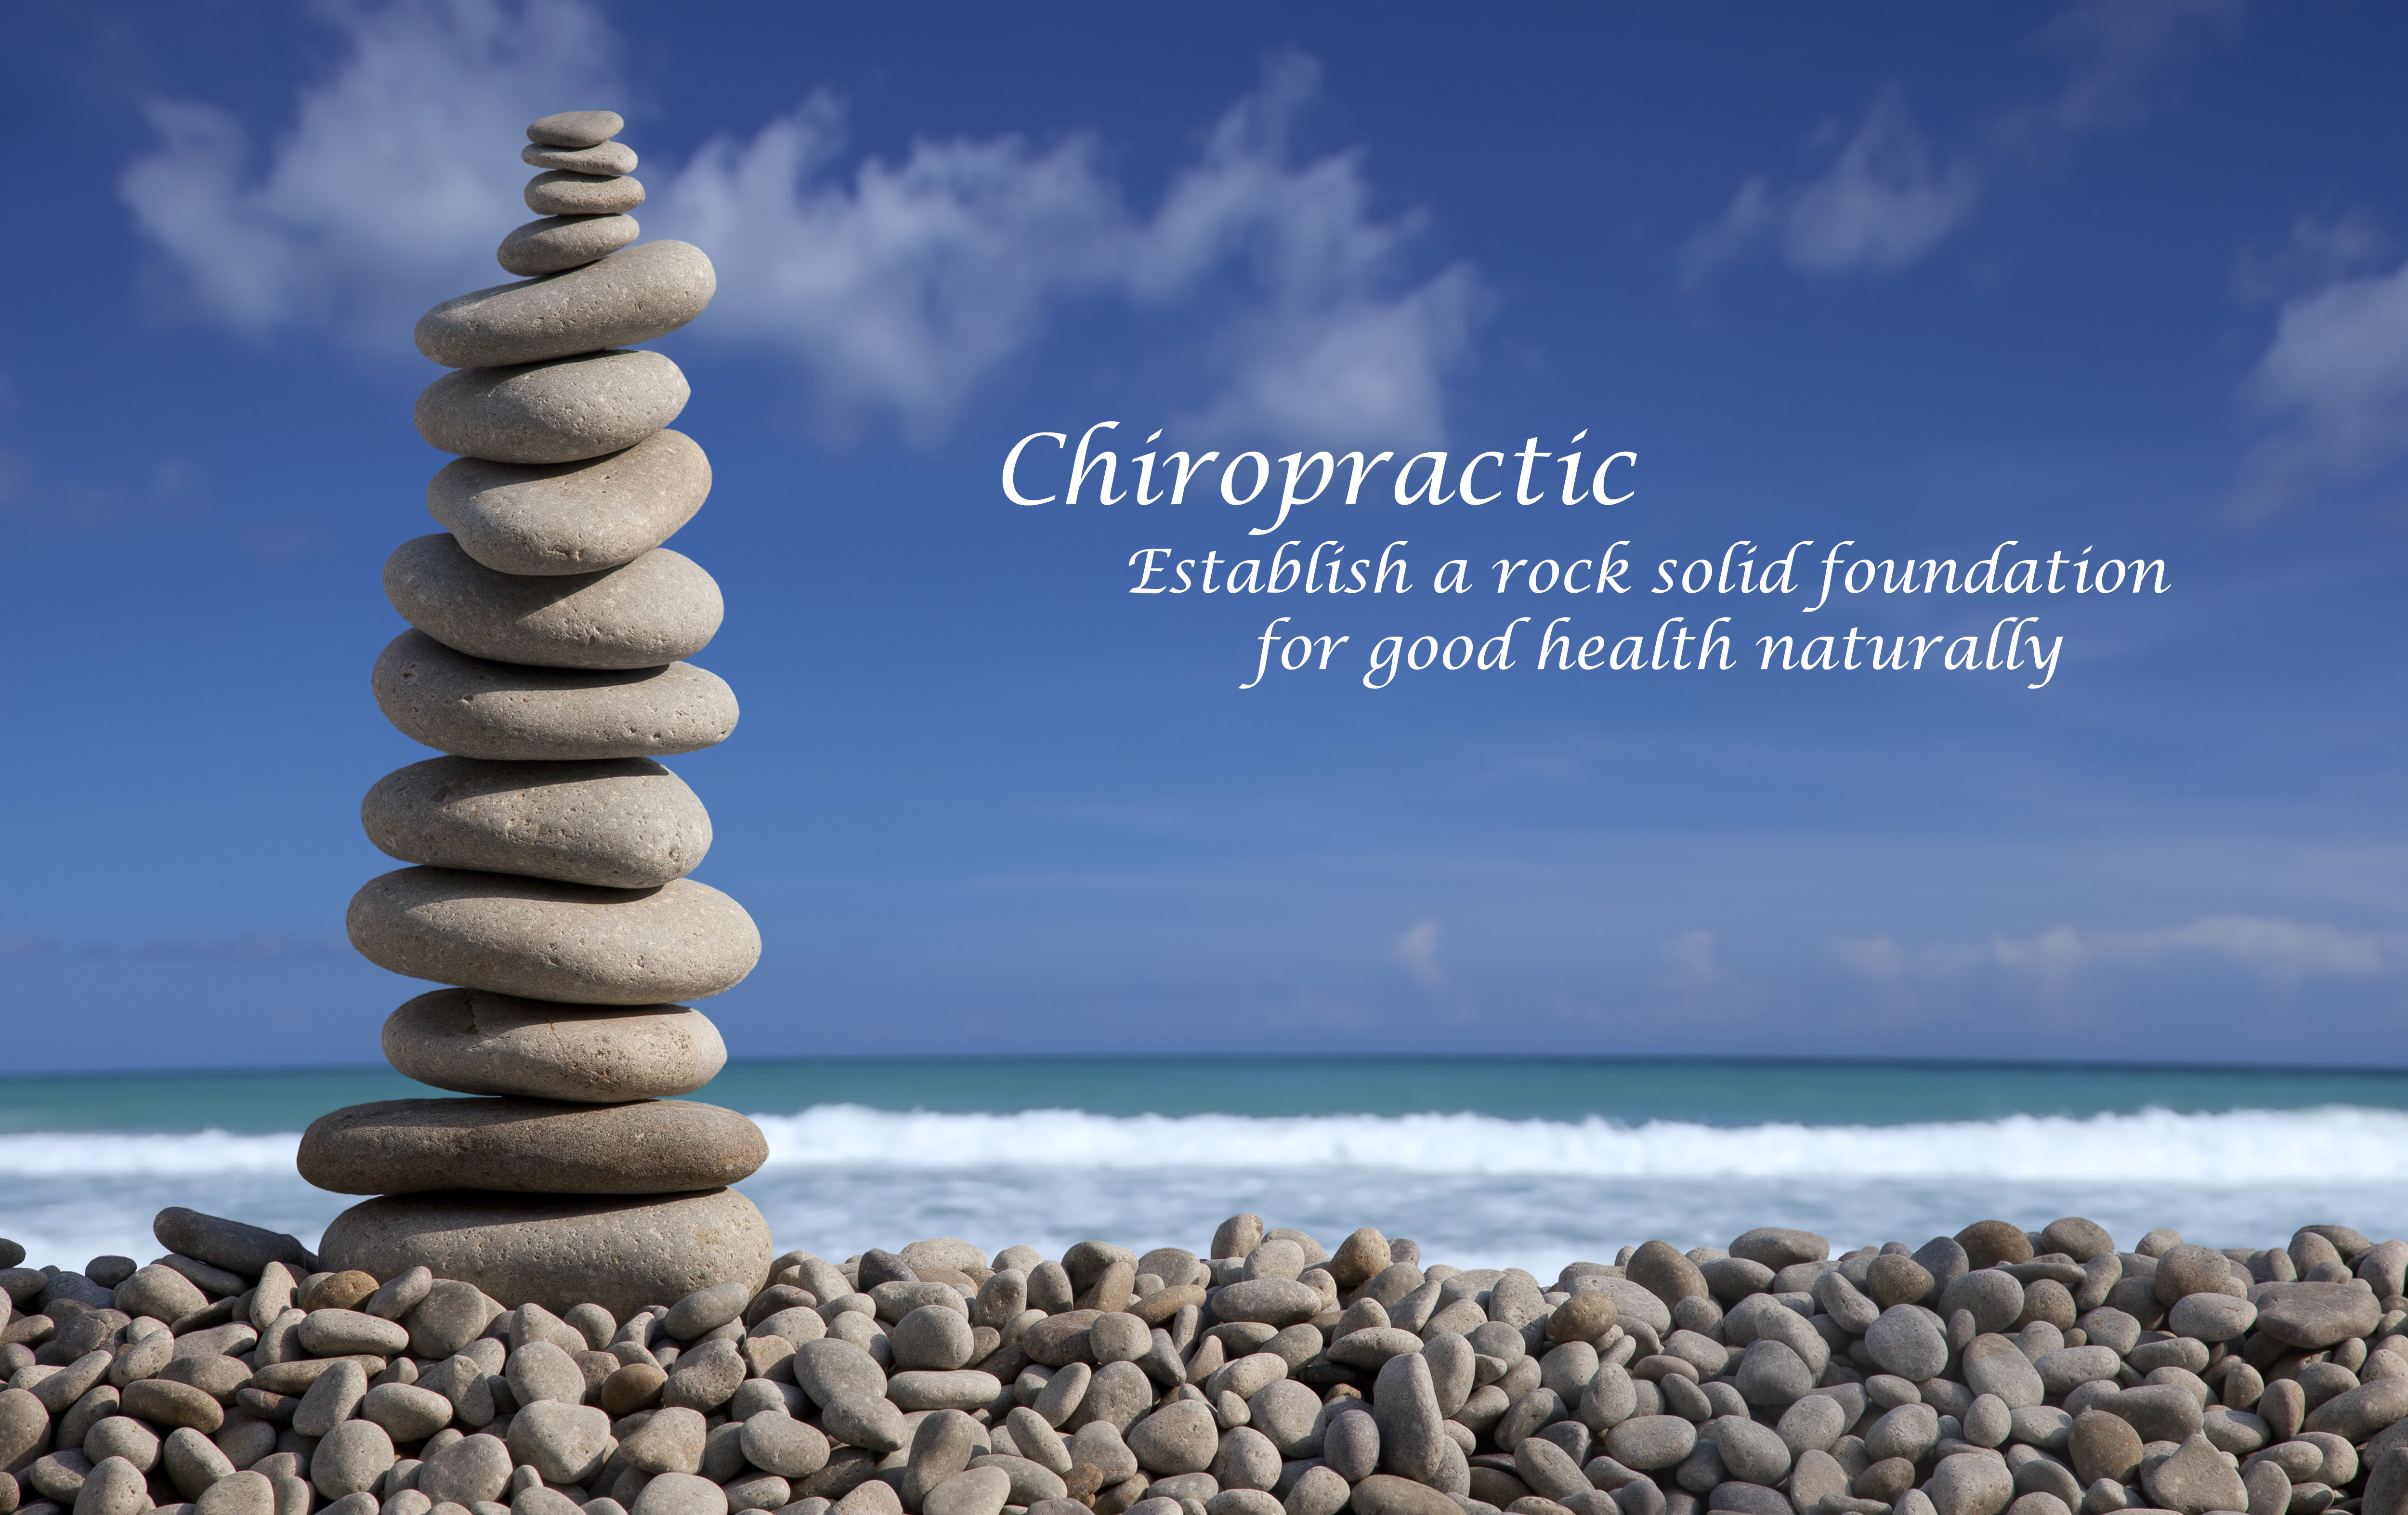 Chiropractic quote image